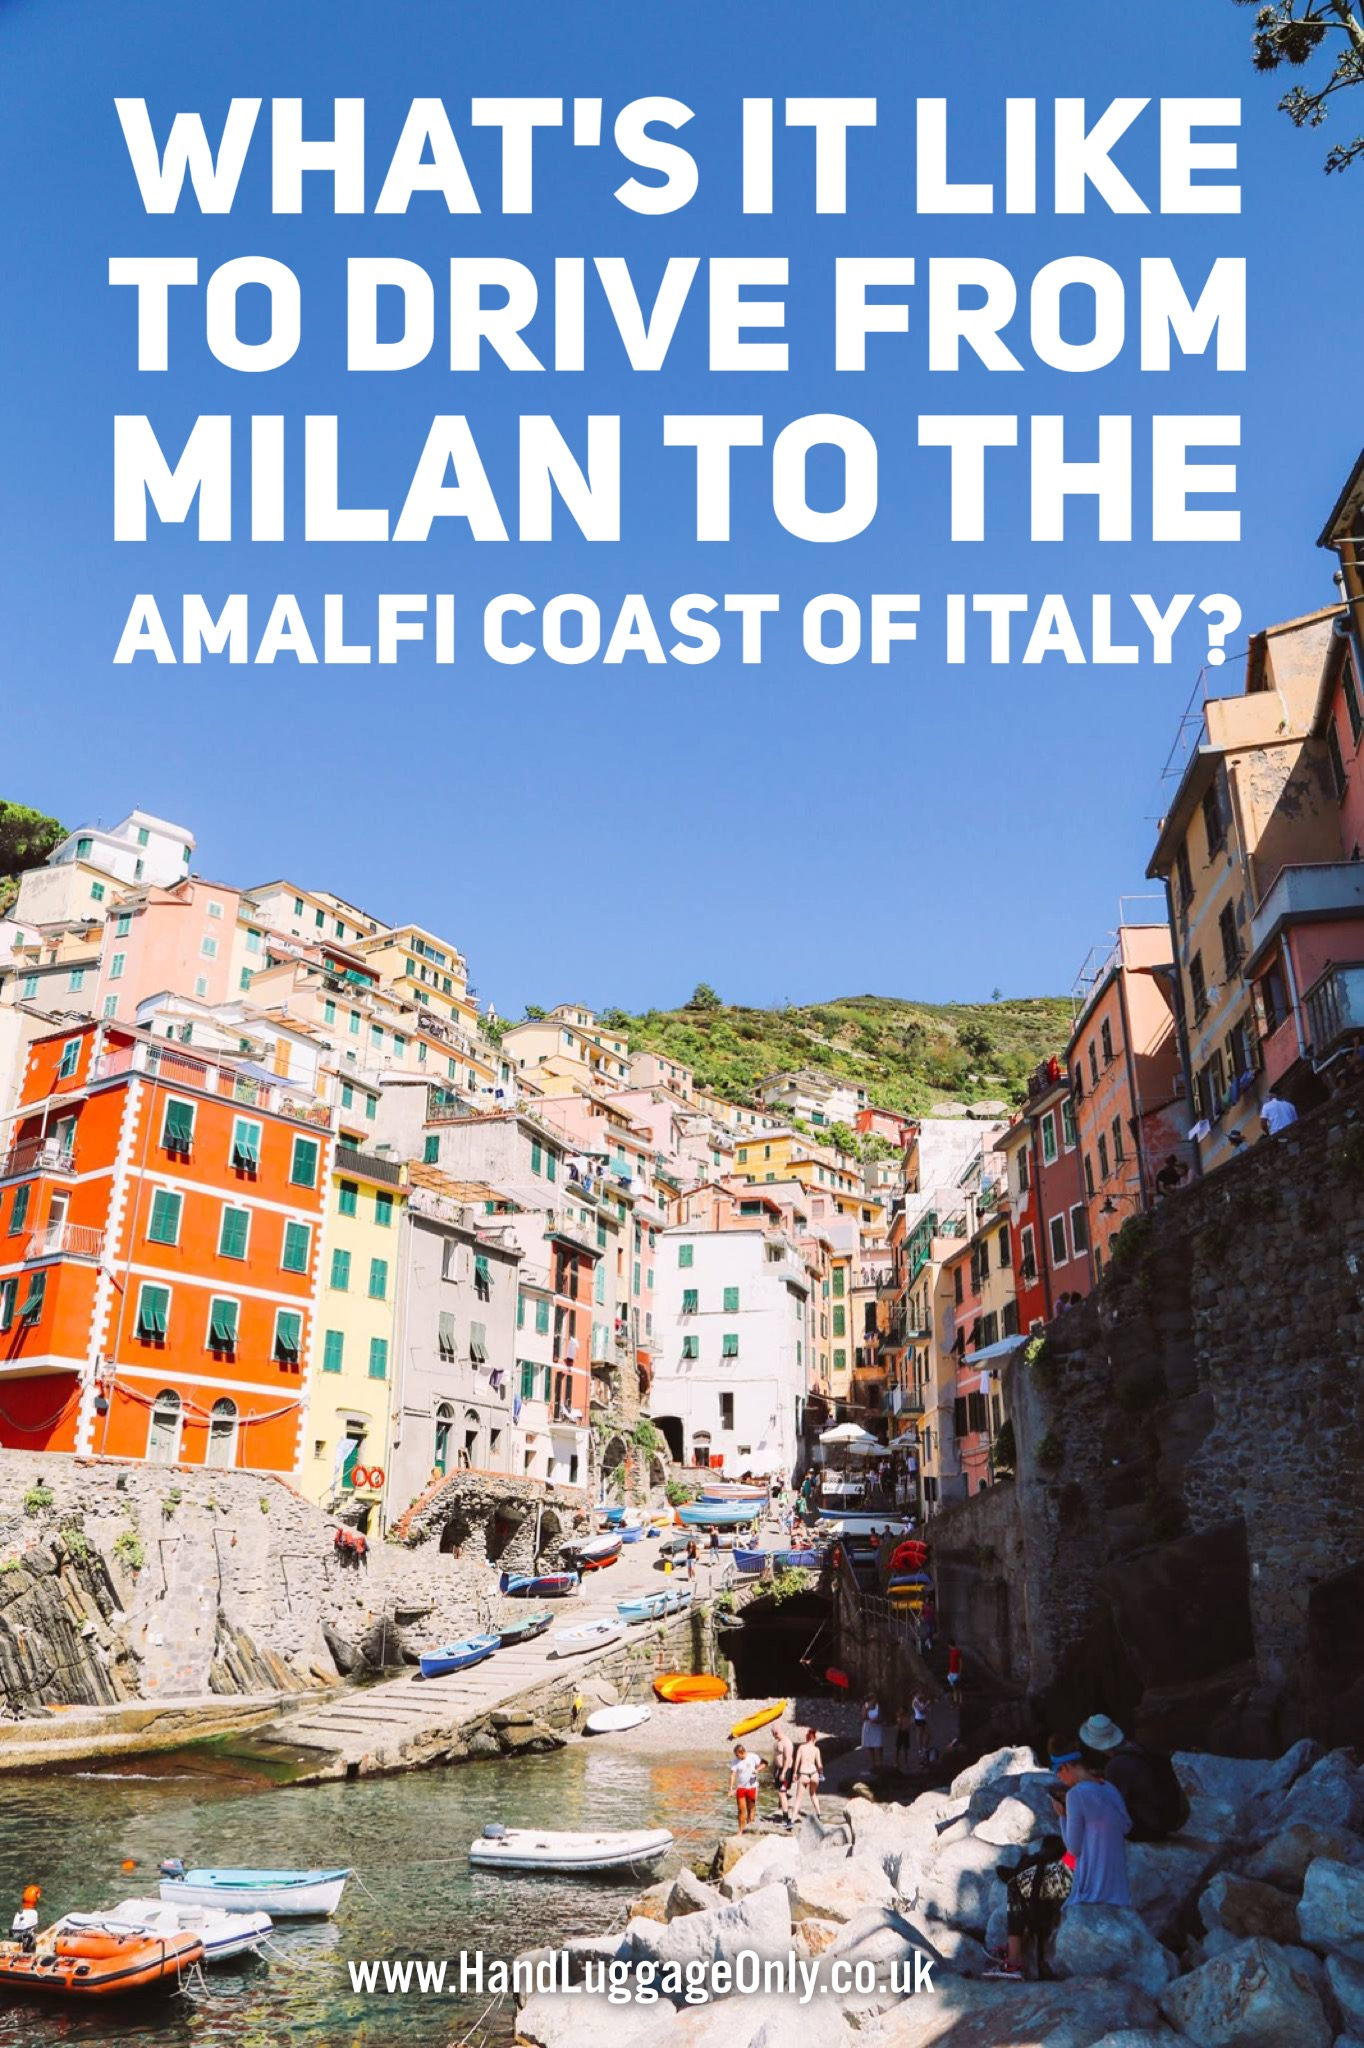 The Great Italian Road Trip - From Milan To The Amalfi Coast